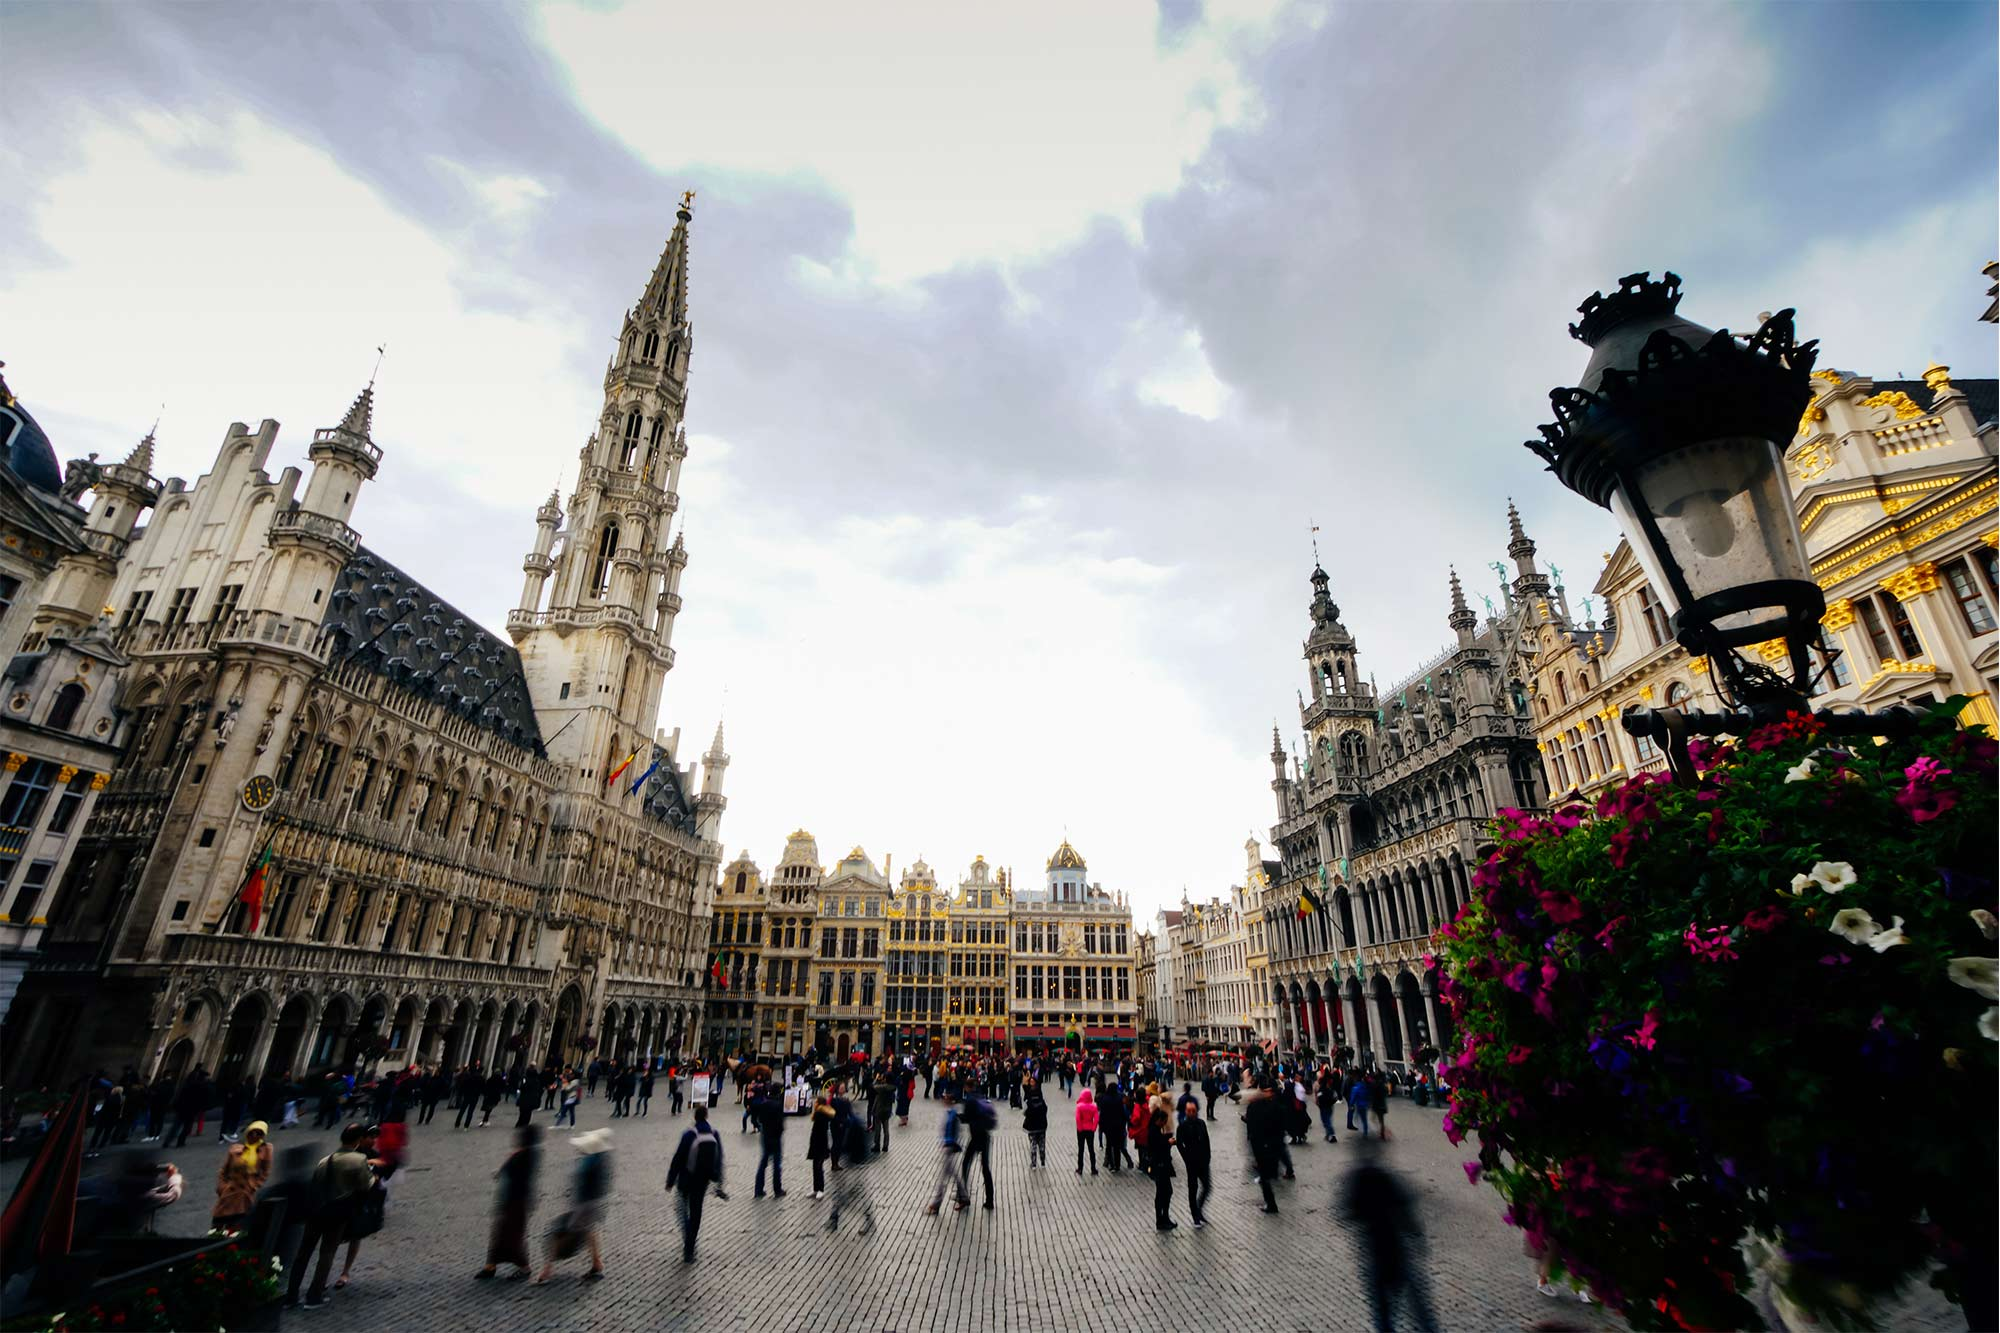 Grand Place, the central square of Brussels